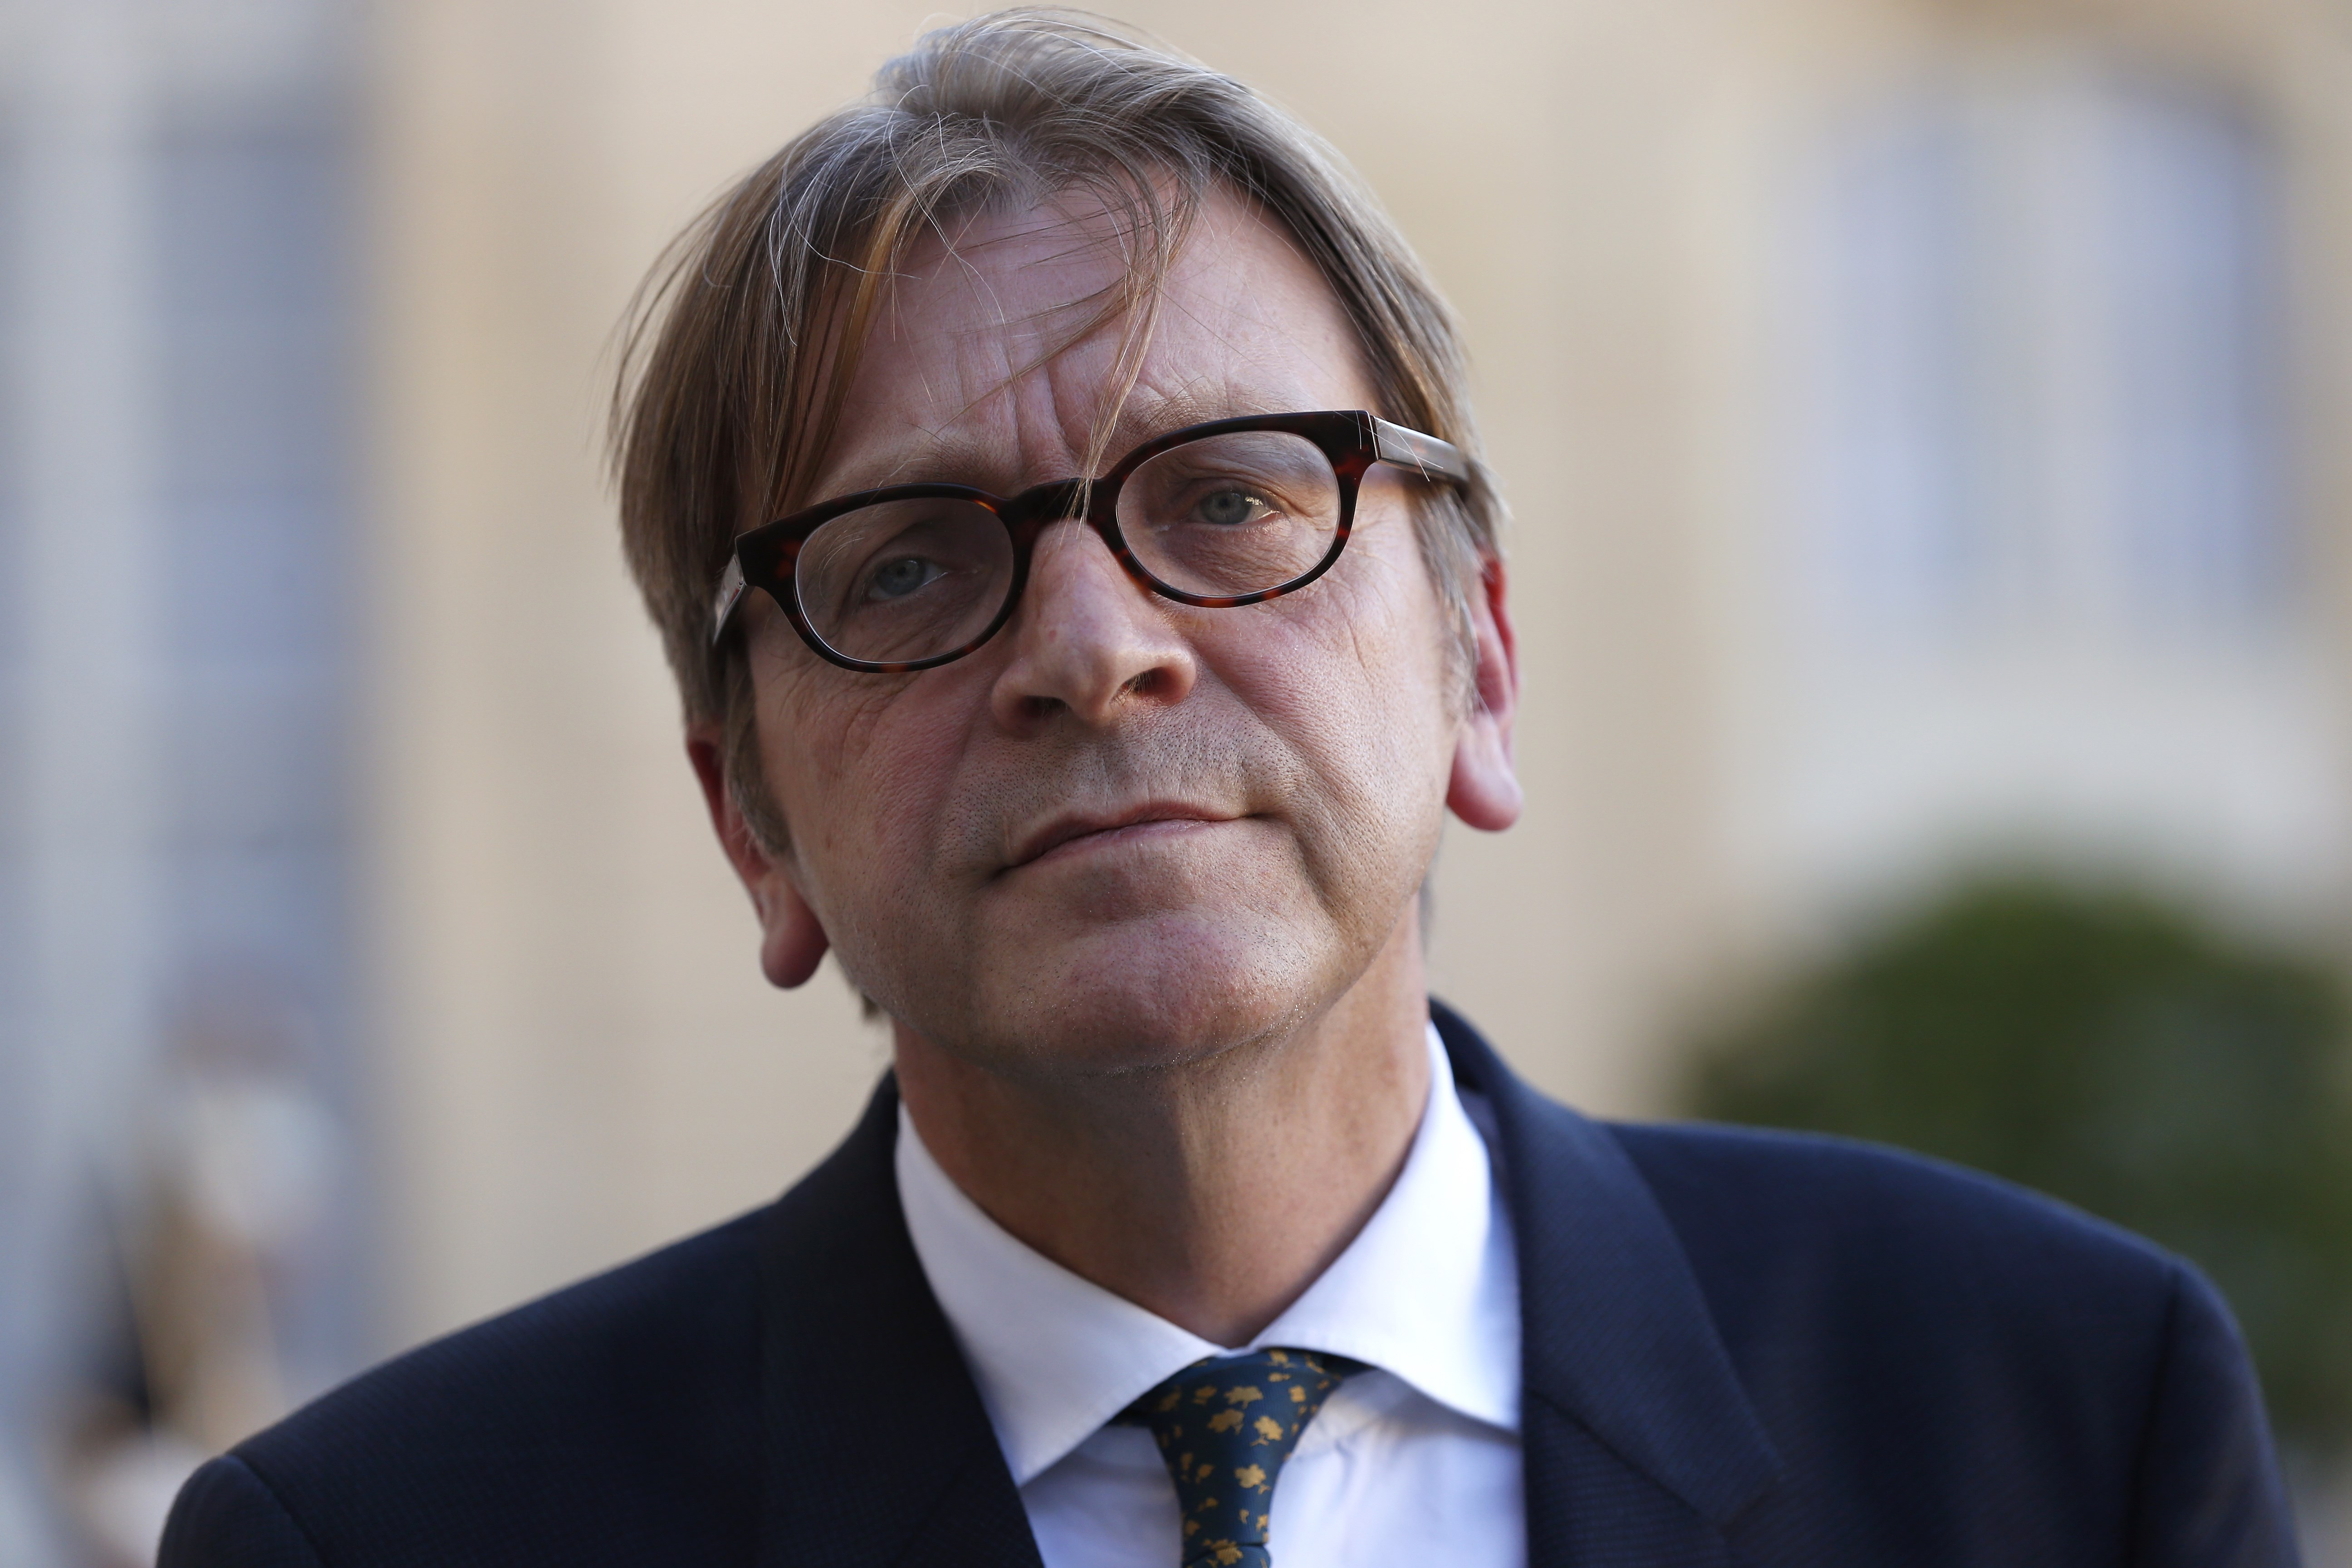 Guy Verhofstadt, Belgian member of the European Parliament, leader of the Alliance of liberals and Democrats for Europe (ALDE) group, and former Belgium prime minister, speaks to journalists after a meeting with French President at the Elysee Presidential Palace, in Paris  on Sept. 29, 2015.